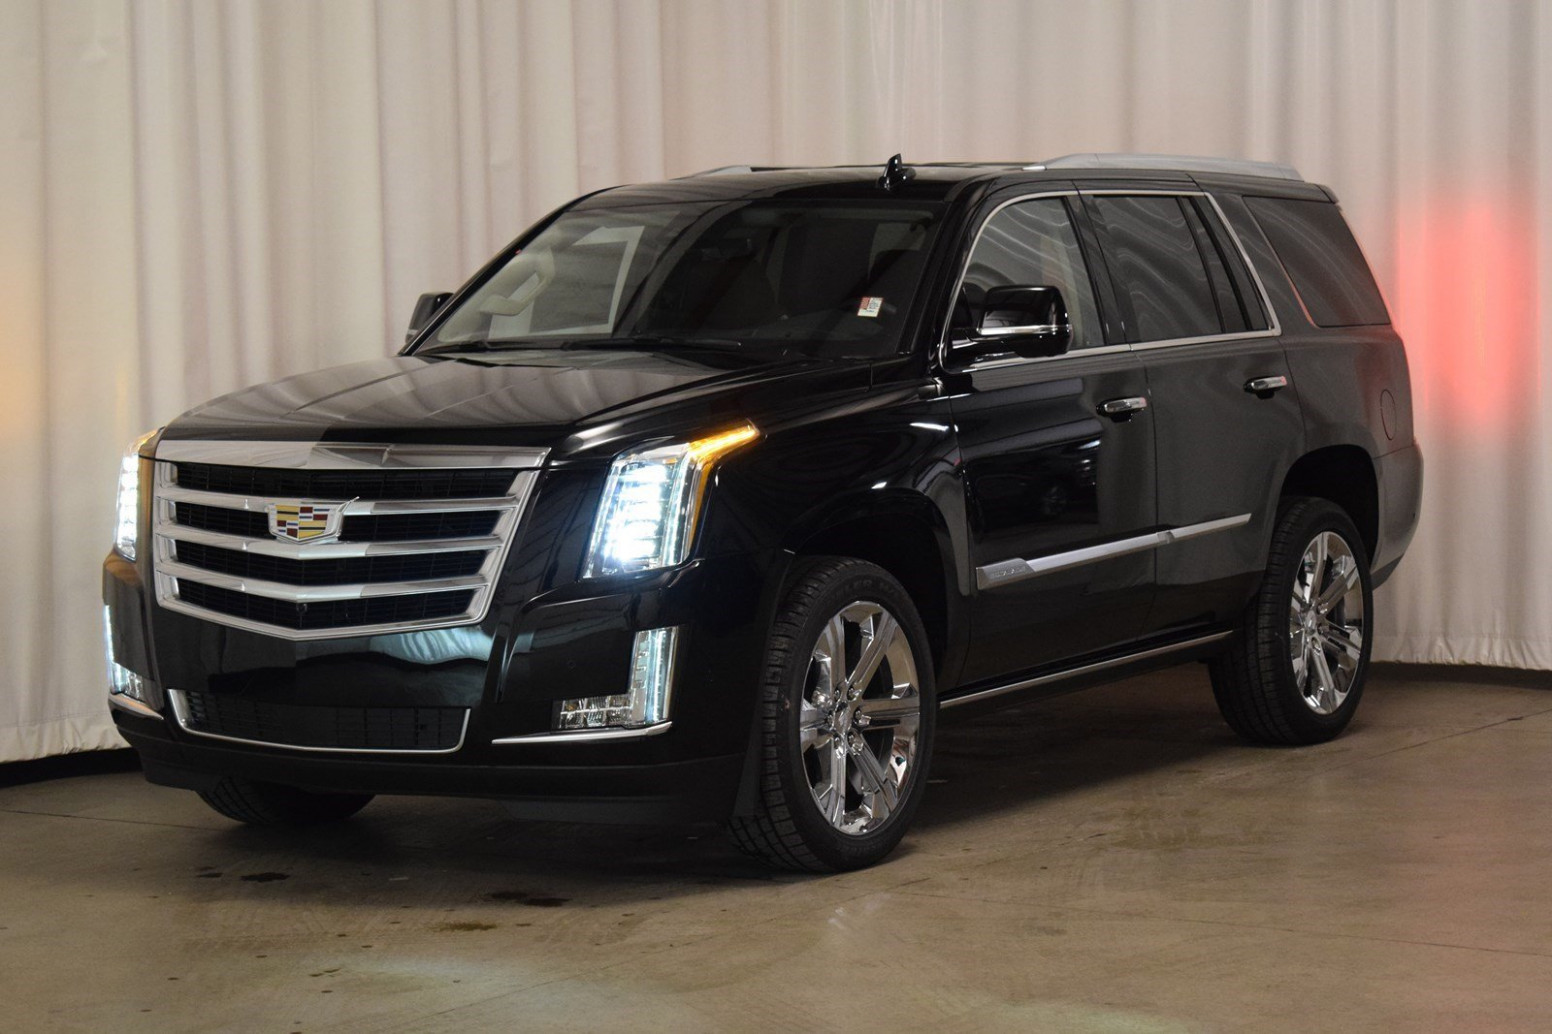 New 11 Cadillac Escalade Premium Luxury With Navigation & 11WD